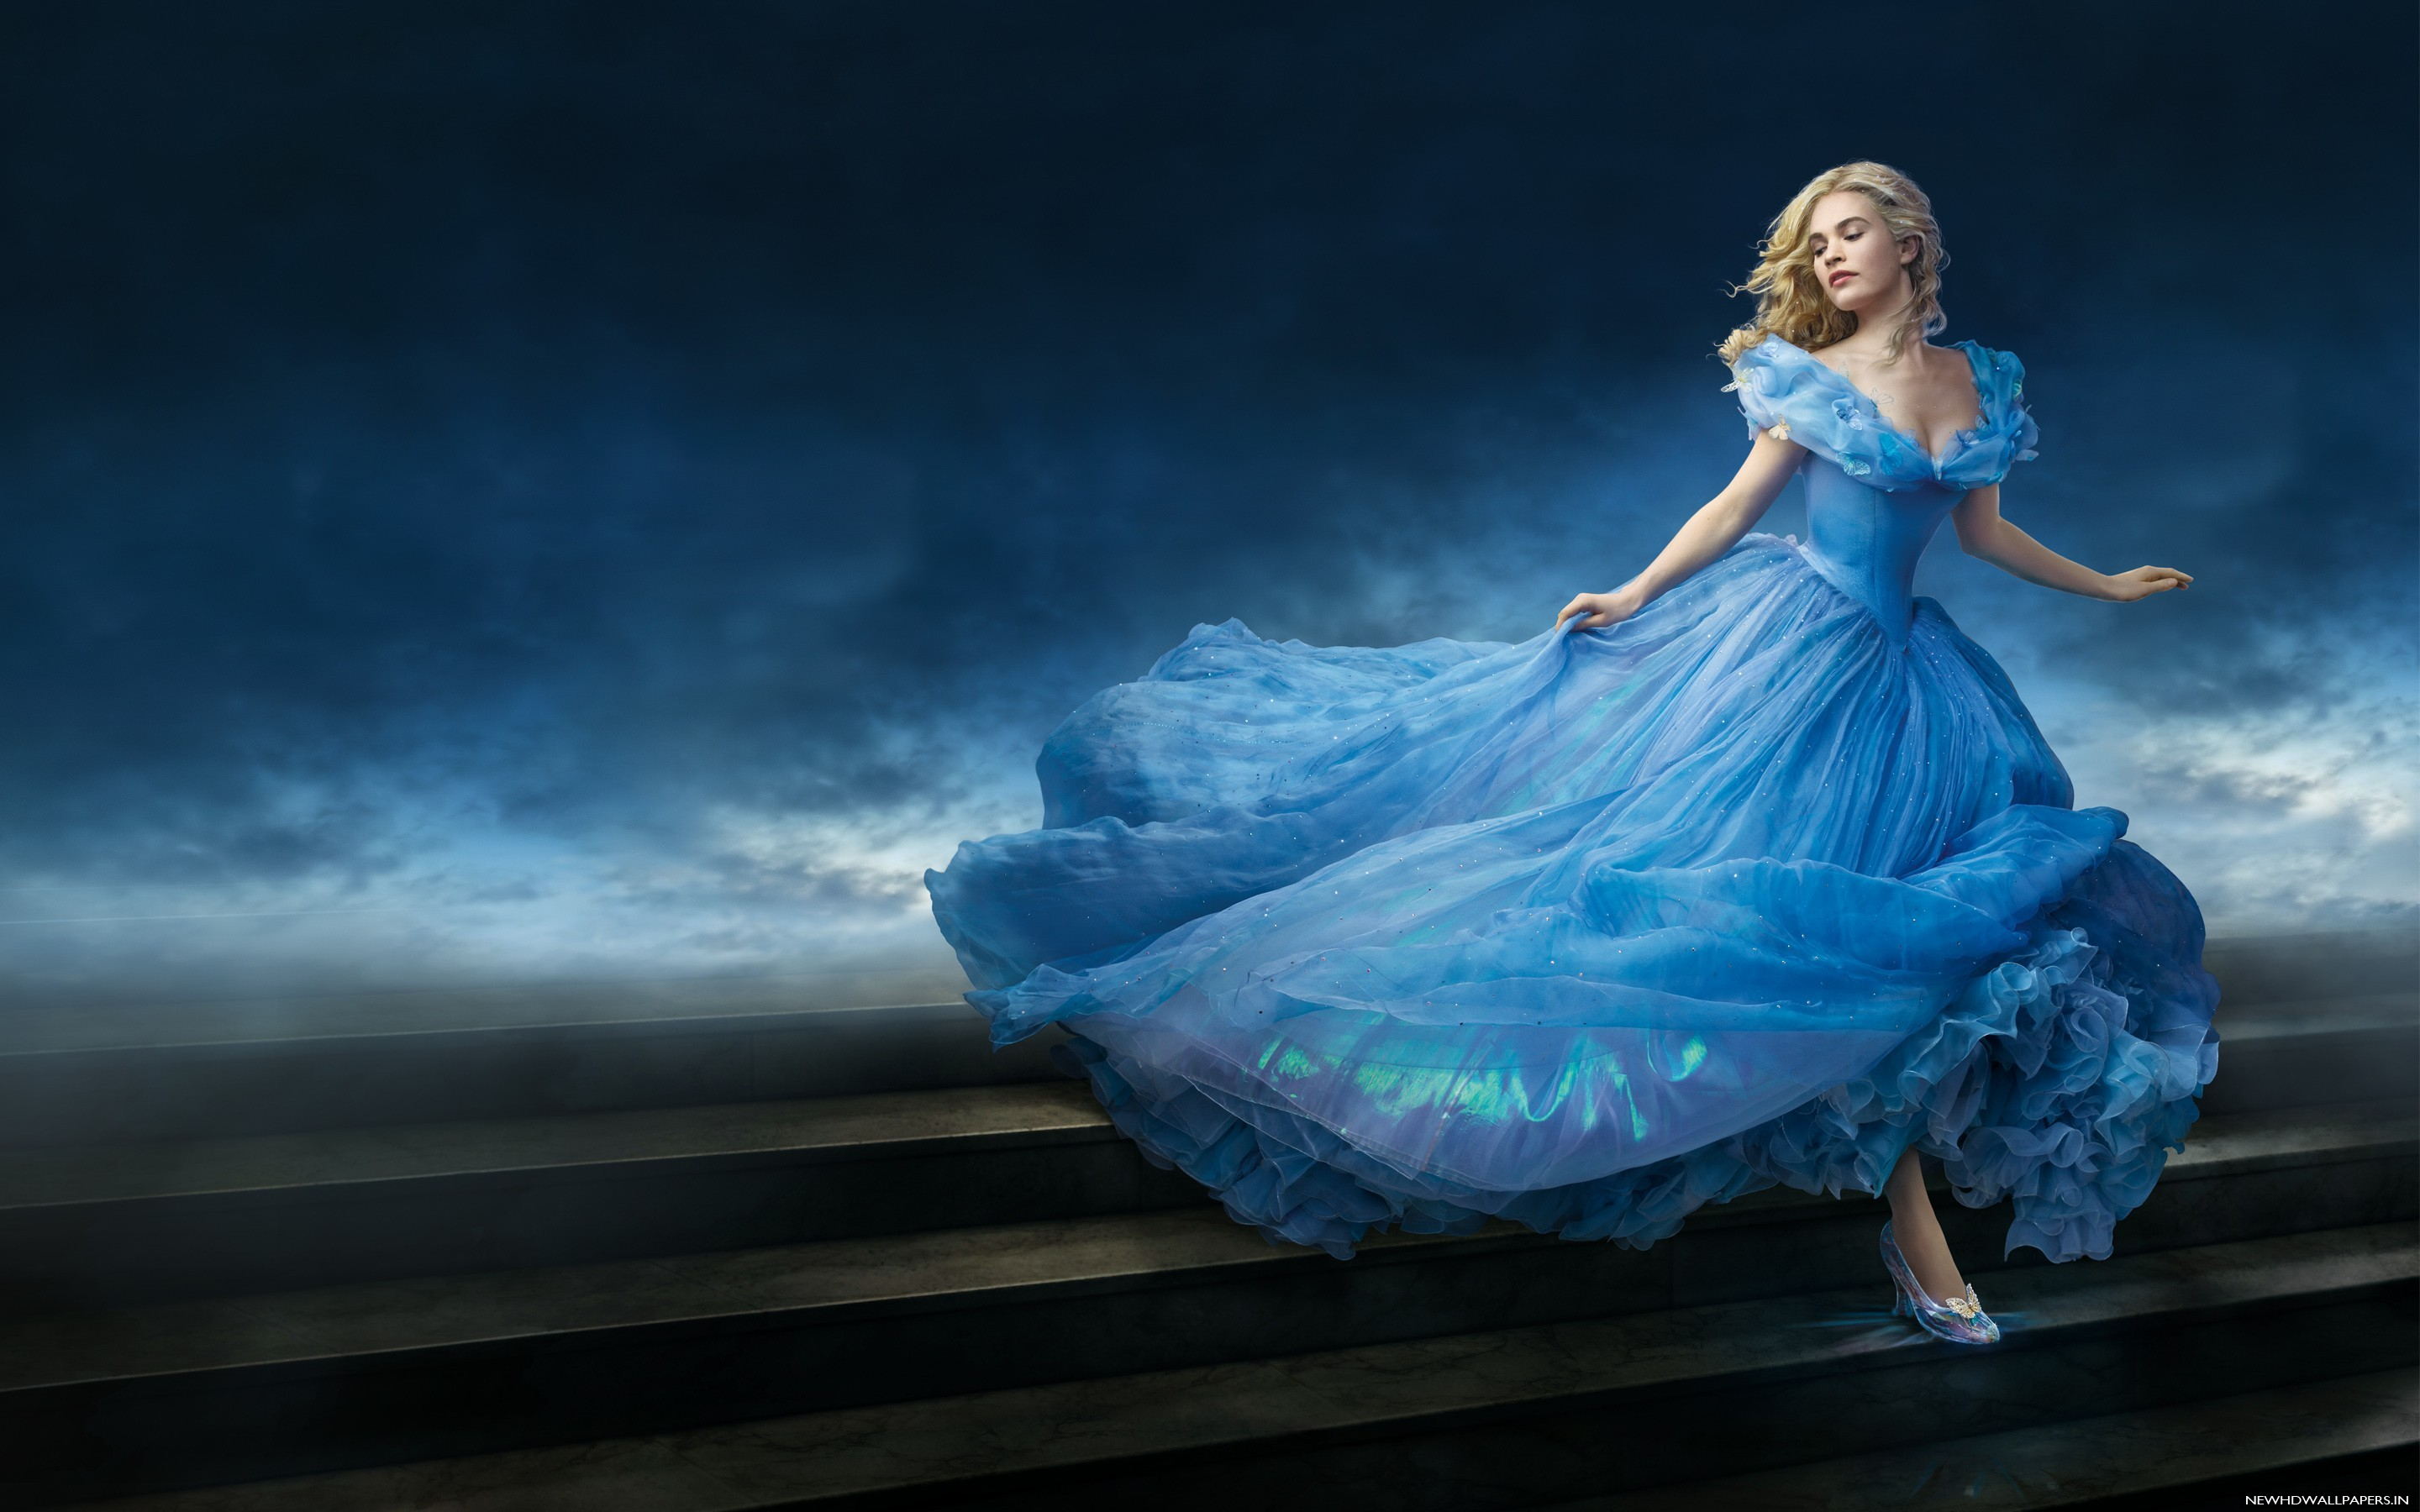 Lily James as Cinderella Movie Wallpaper   New HD Wallpapers 2880x1800